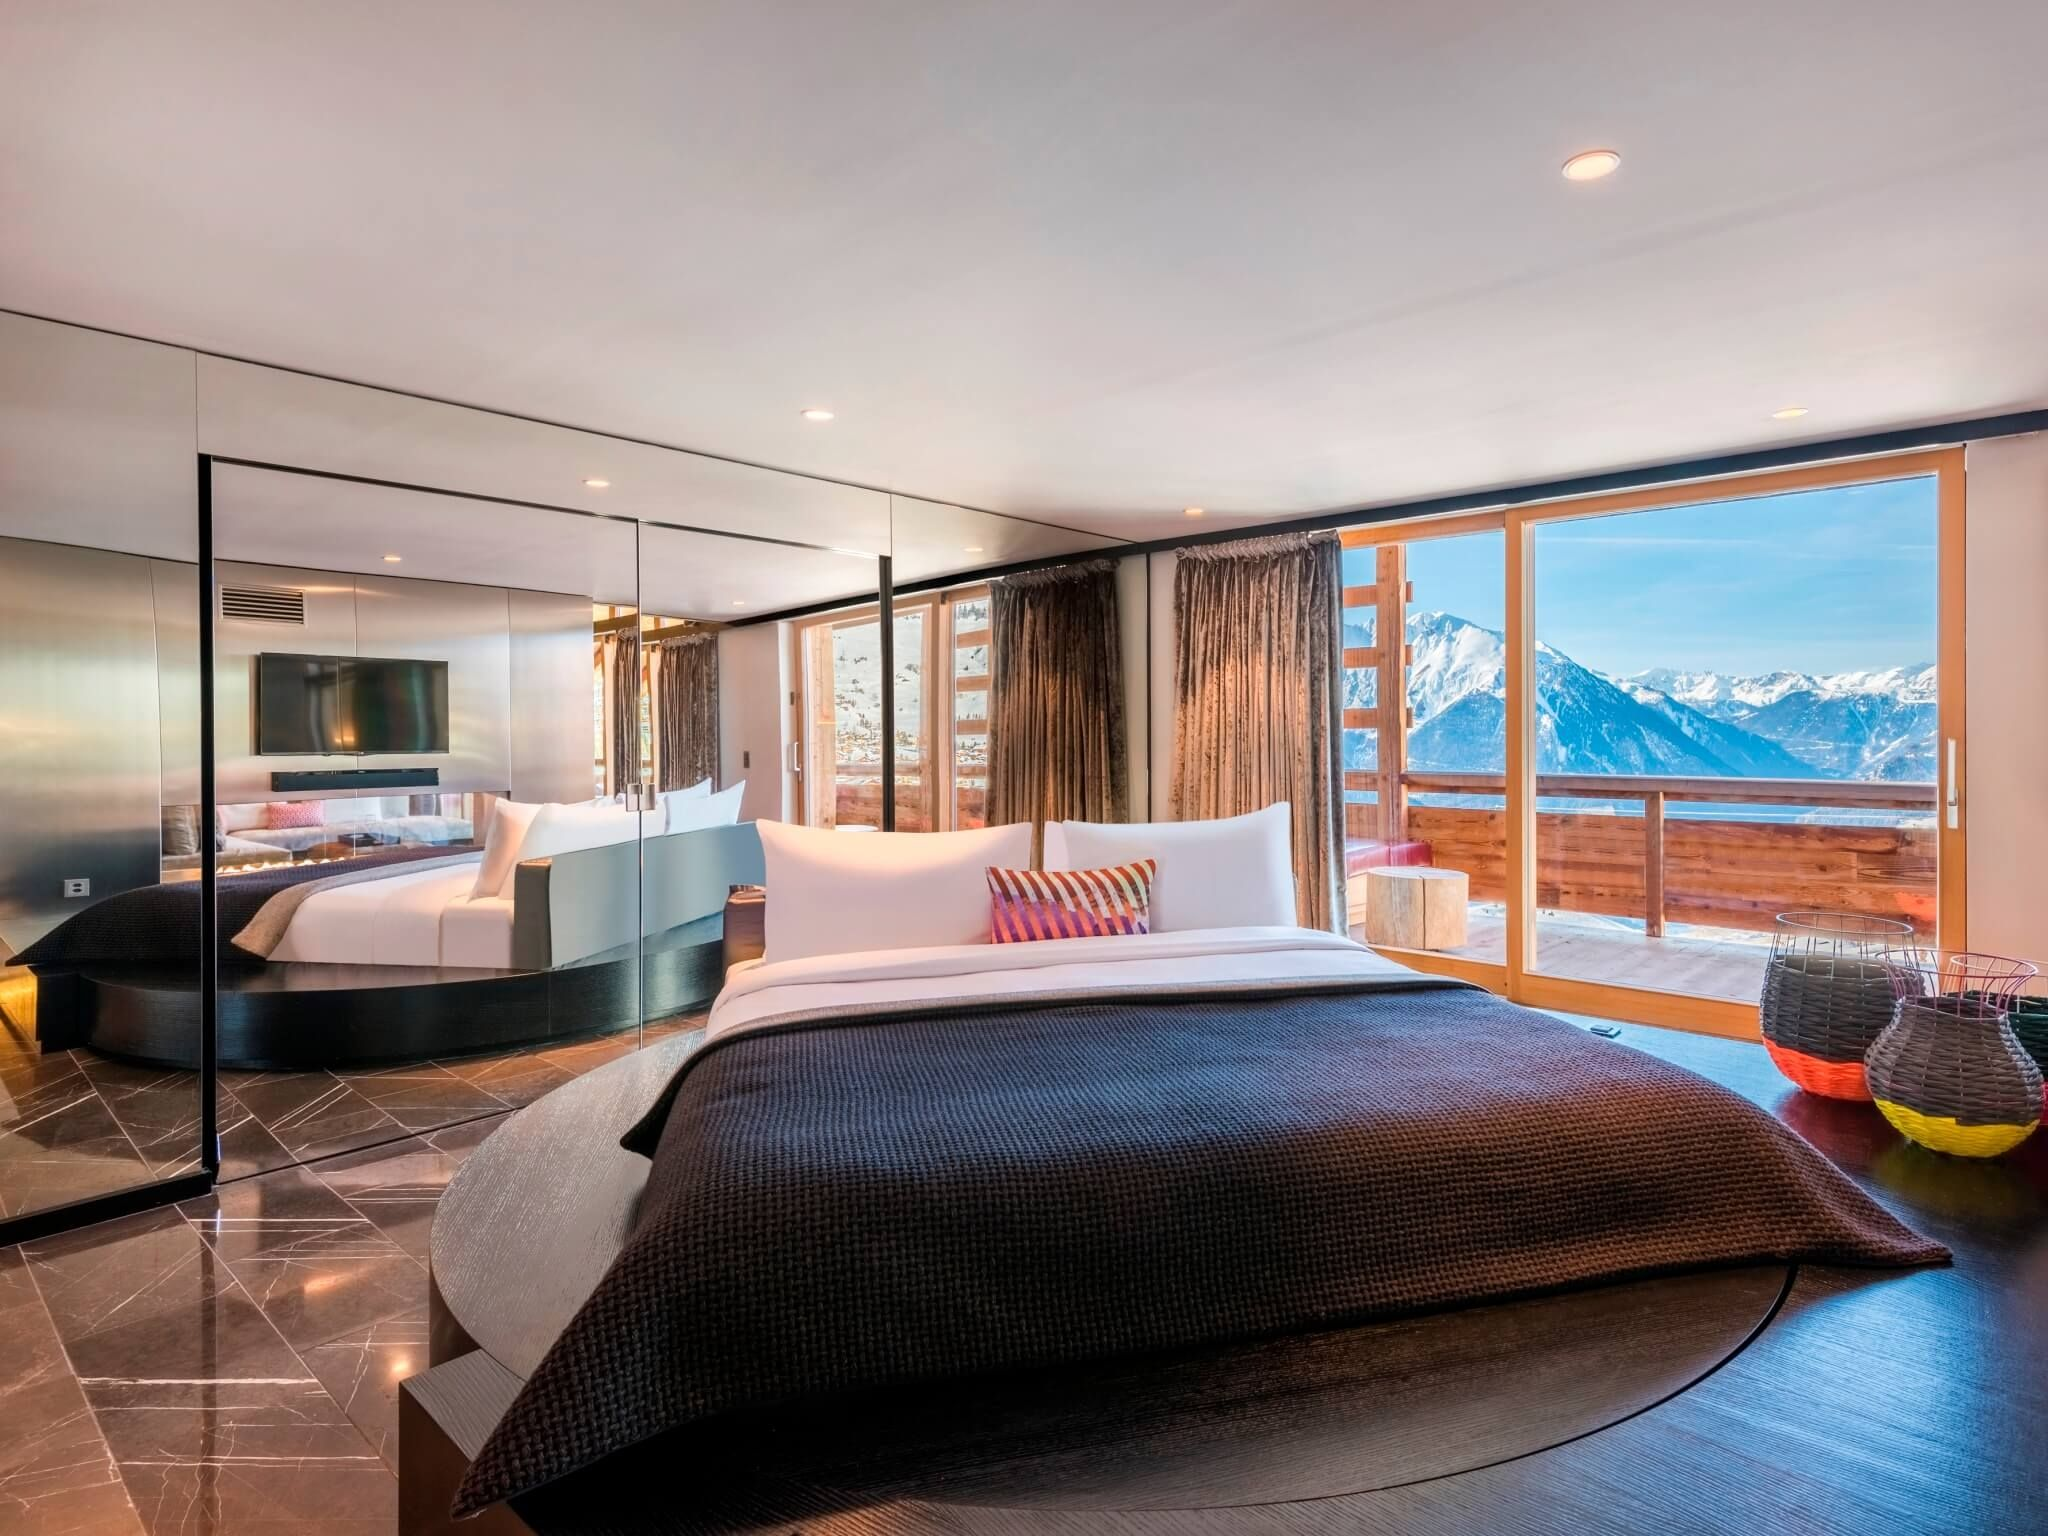 W Verbier Rooms & Suites